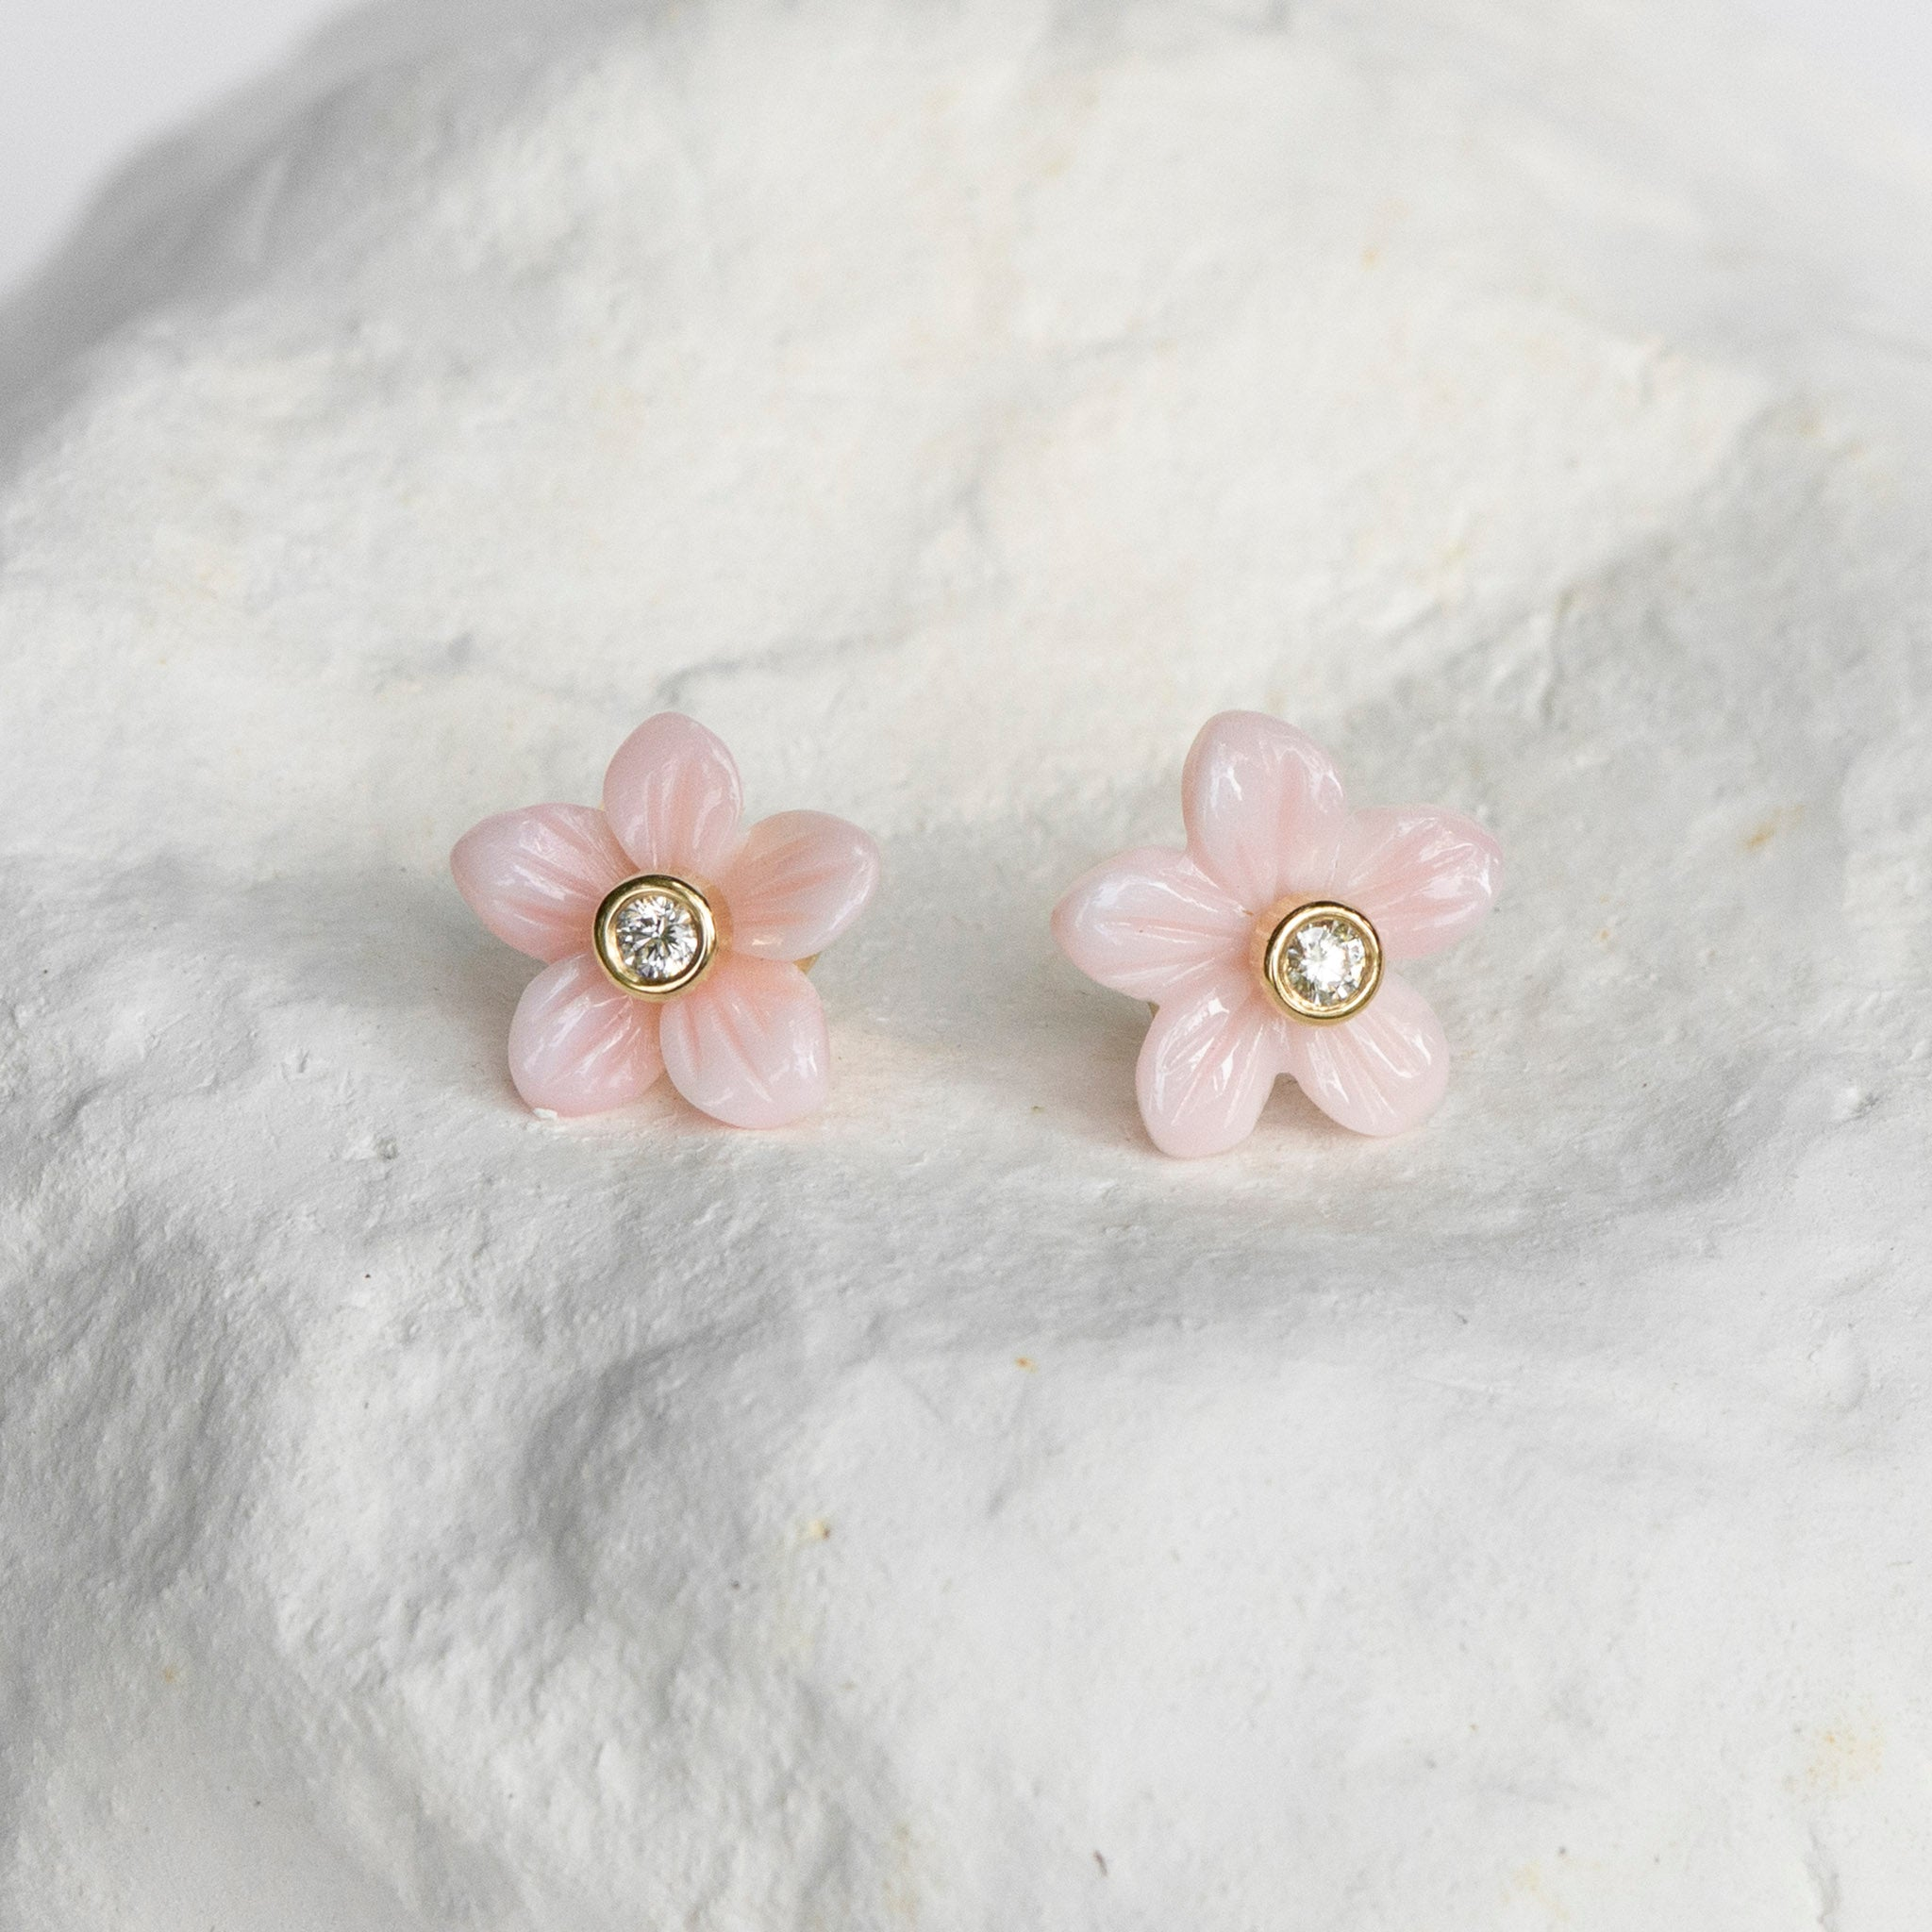 Delicate petit jasmine flower earrings yellow gold and diamonds